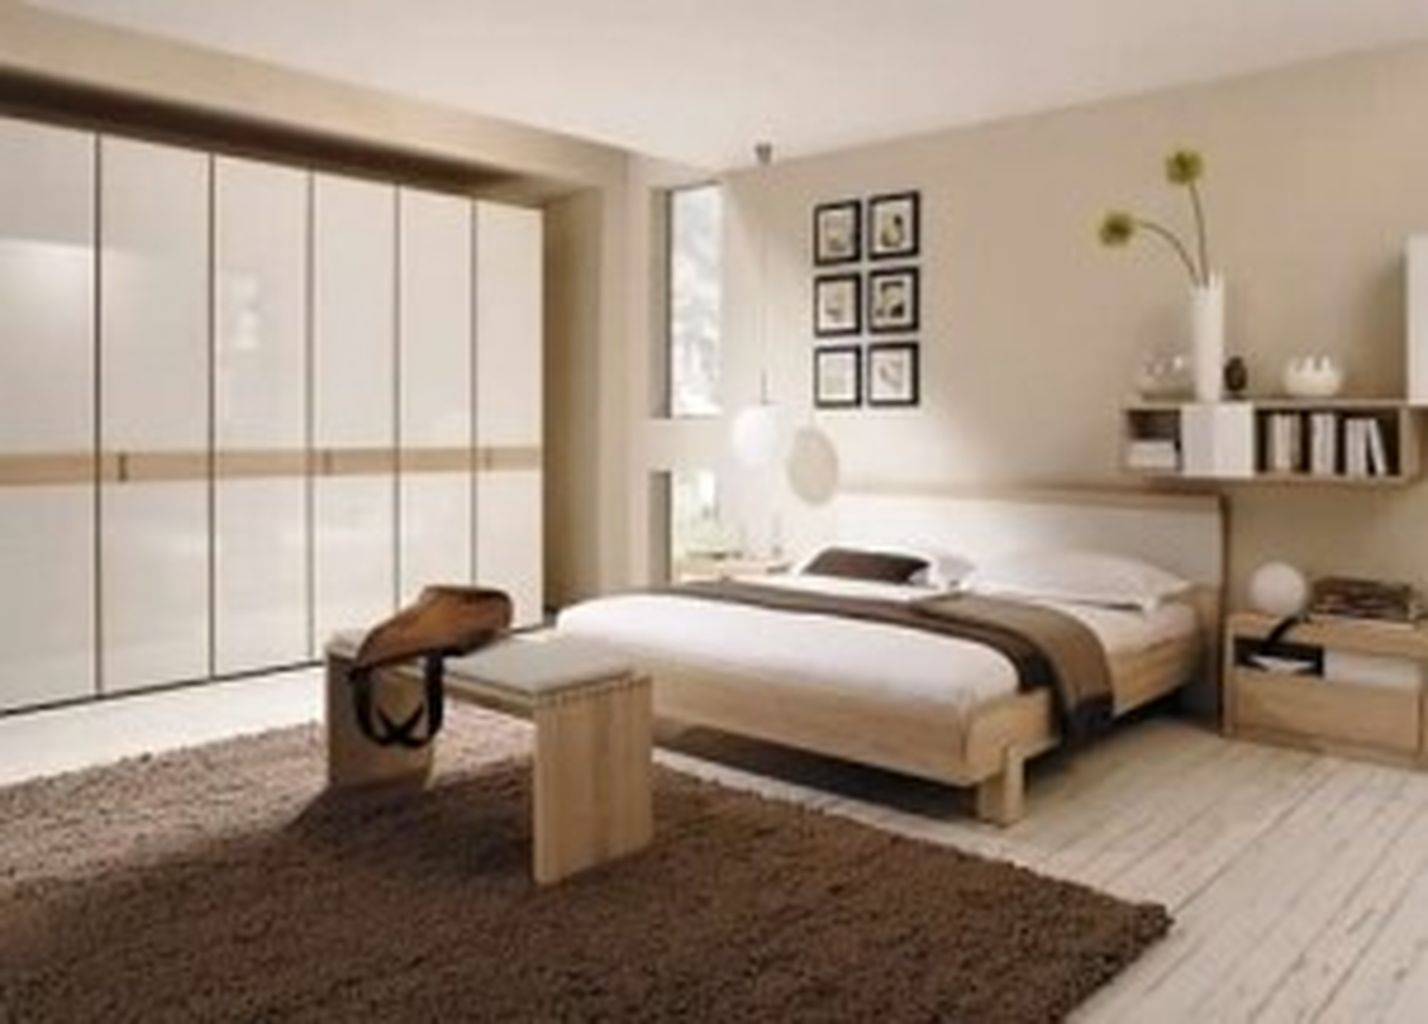 Japanese Design Bedroom Home Decorations Design list of things